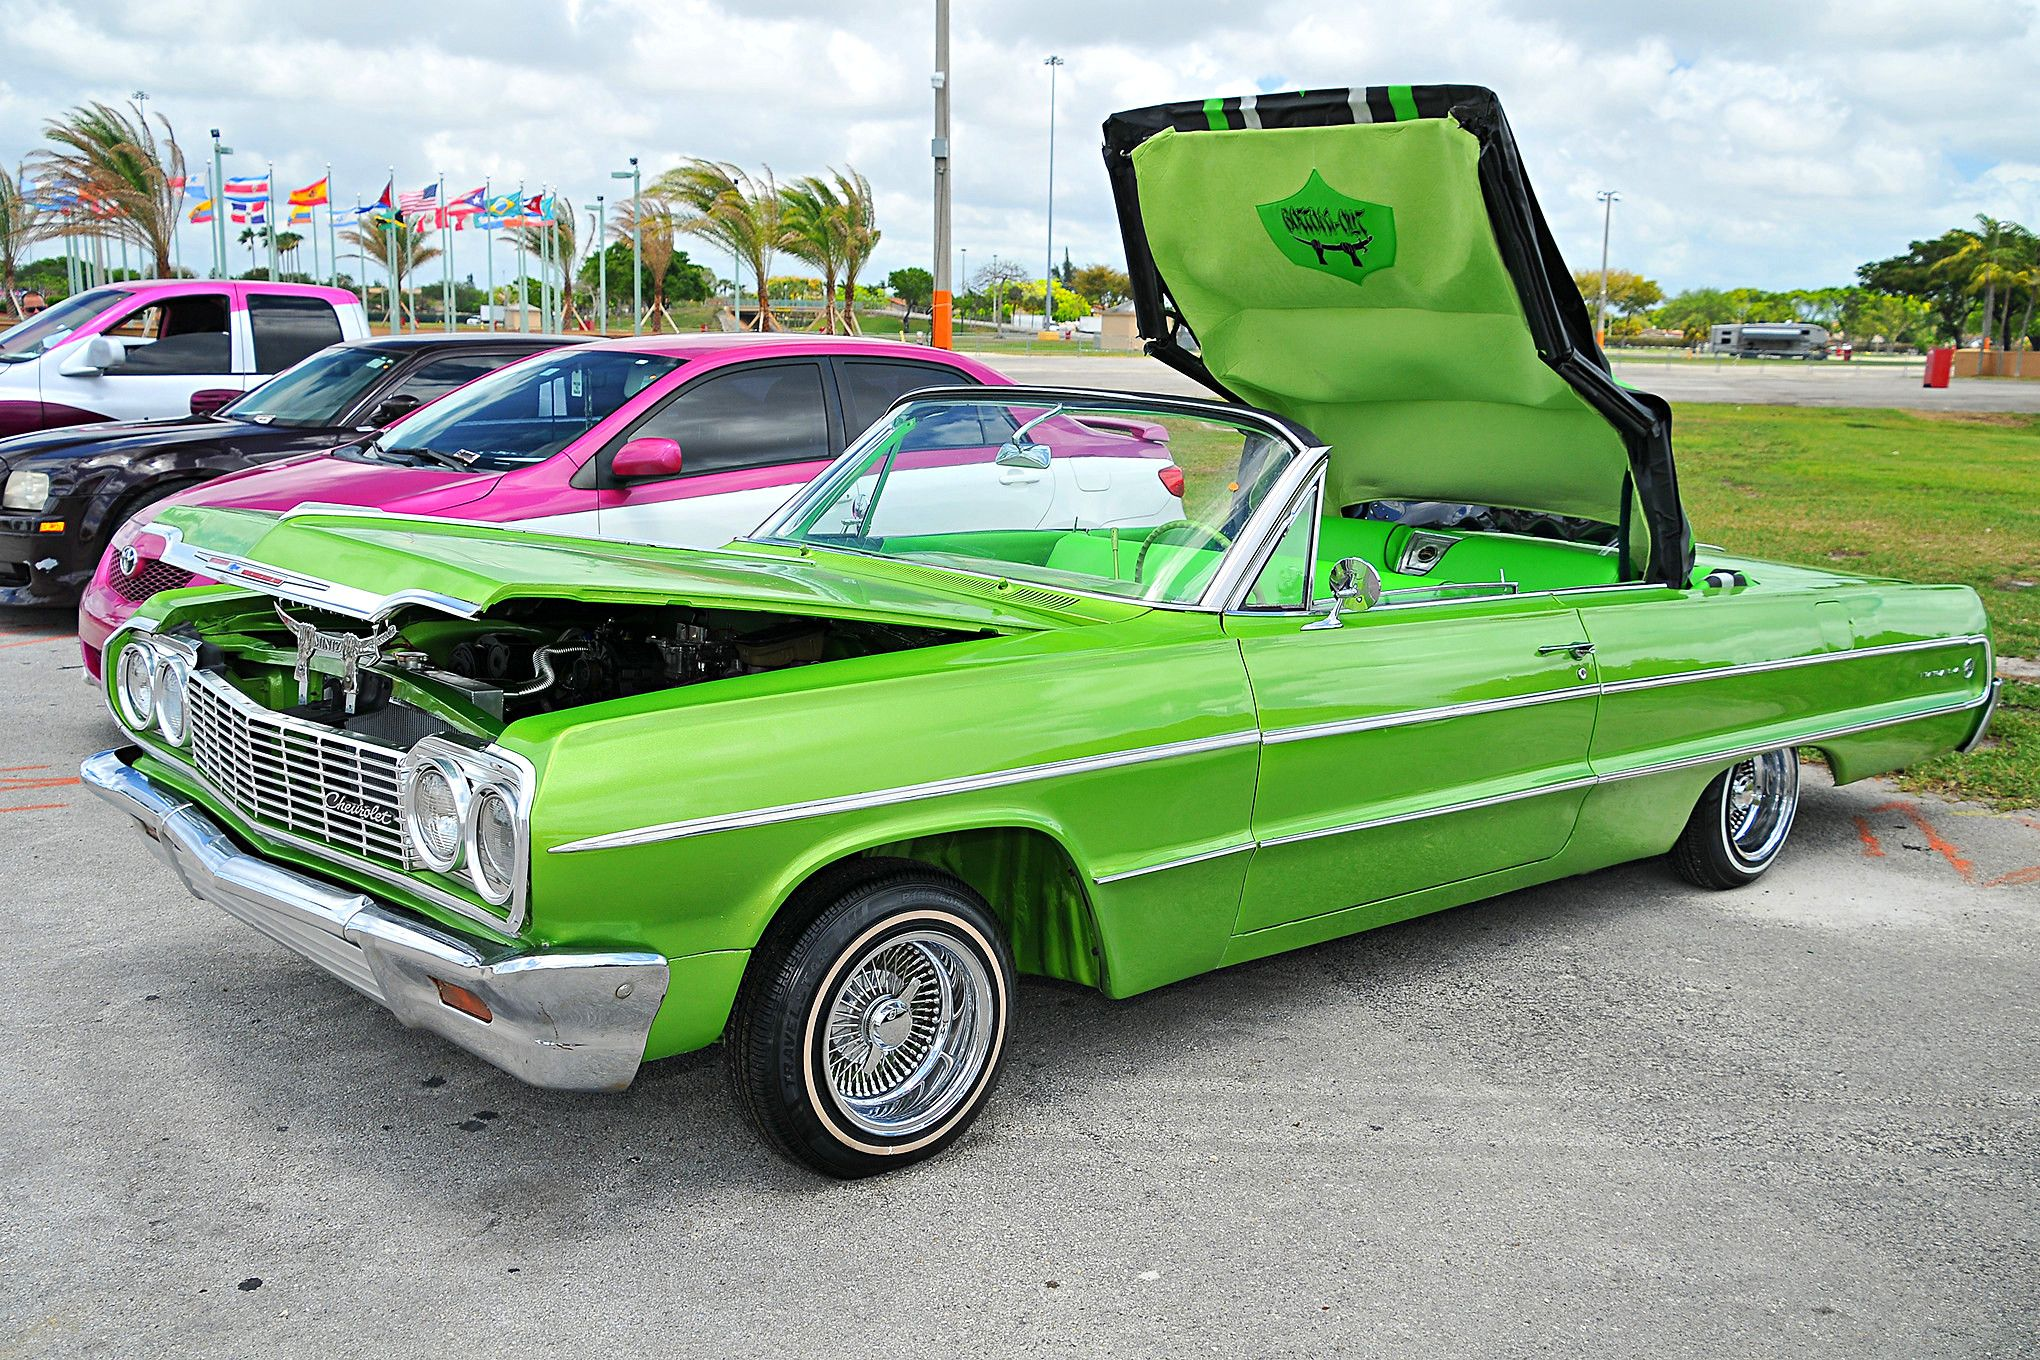 1956 chevy bel air dynomite classic muscle car for sale in - Lime Green 1964 Impala 2017 Miami Lowrider Super Show